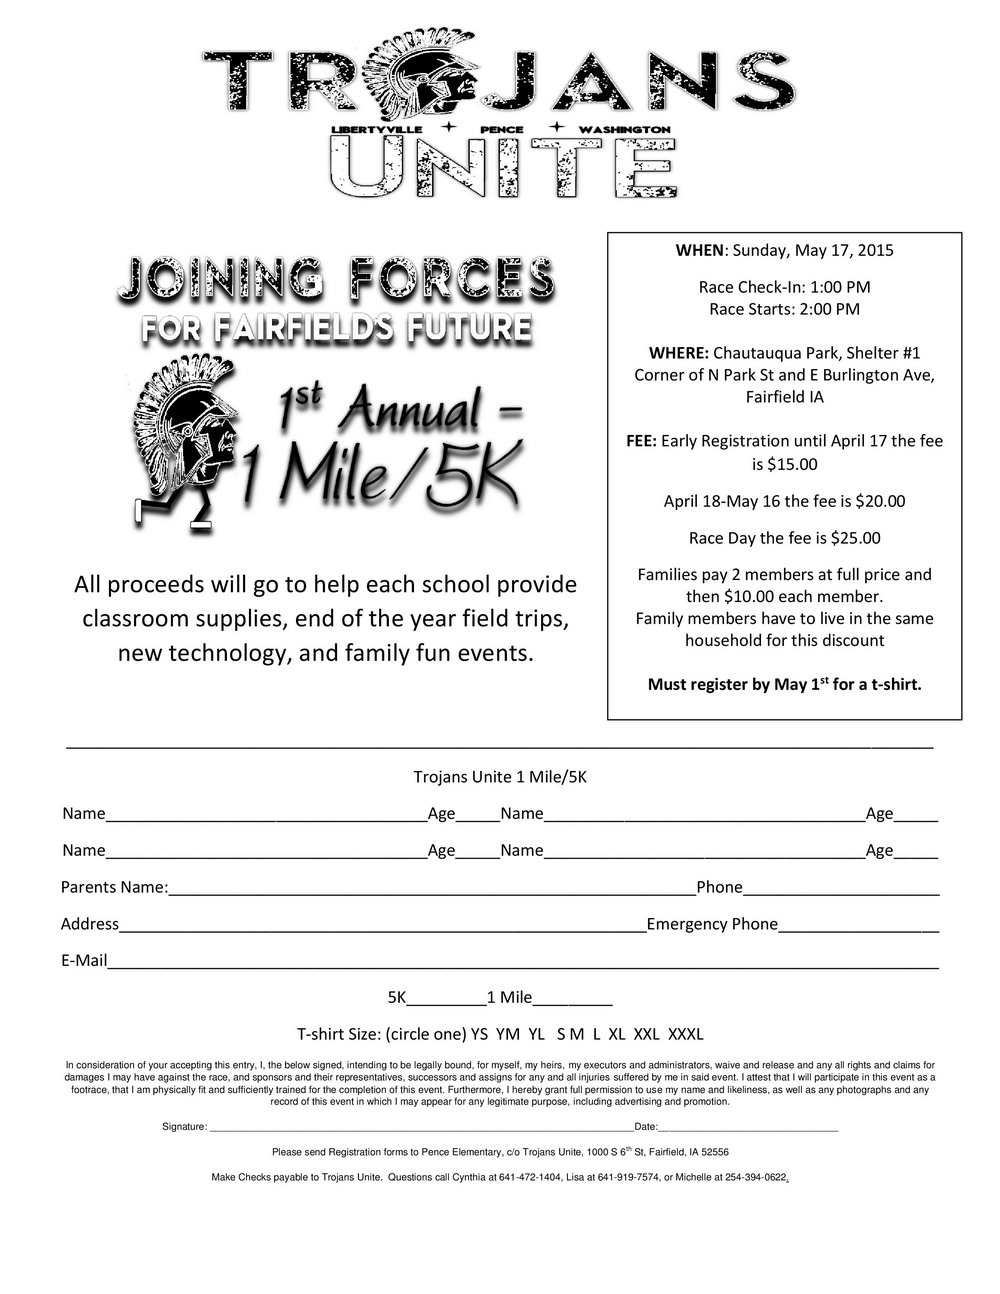 5k Race Registration Form